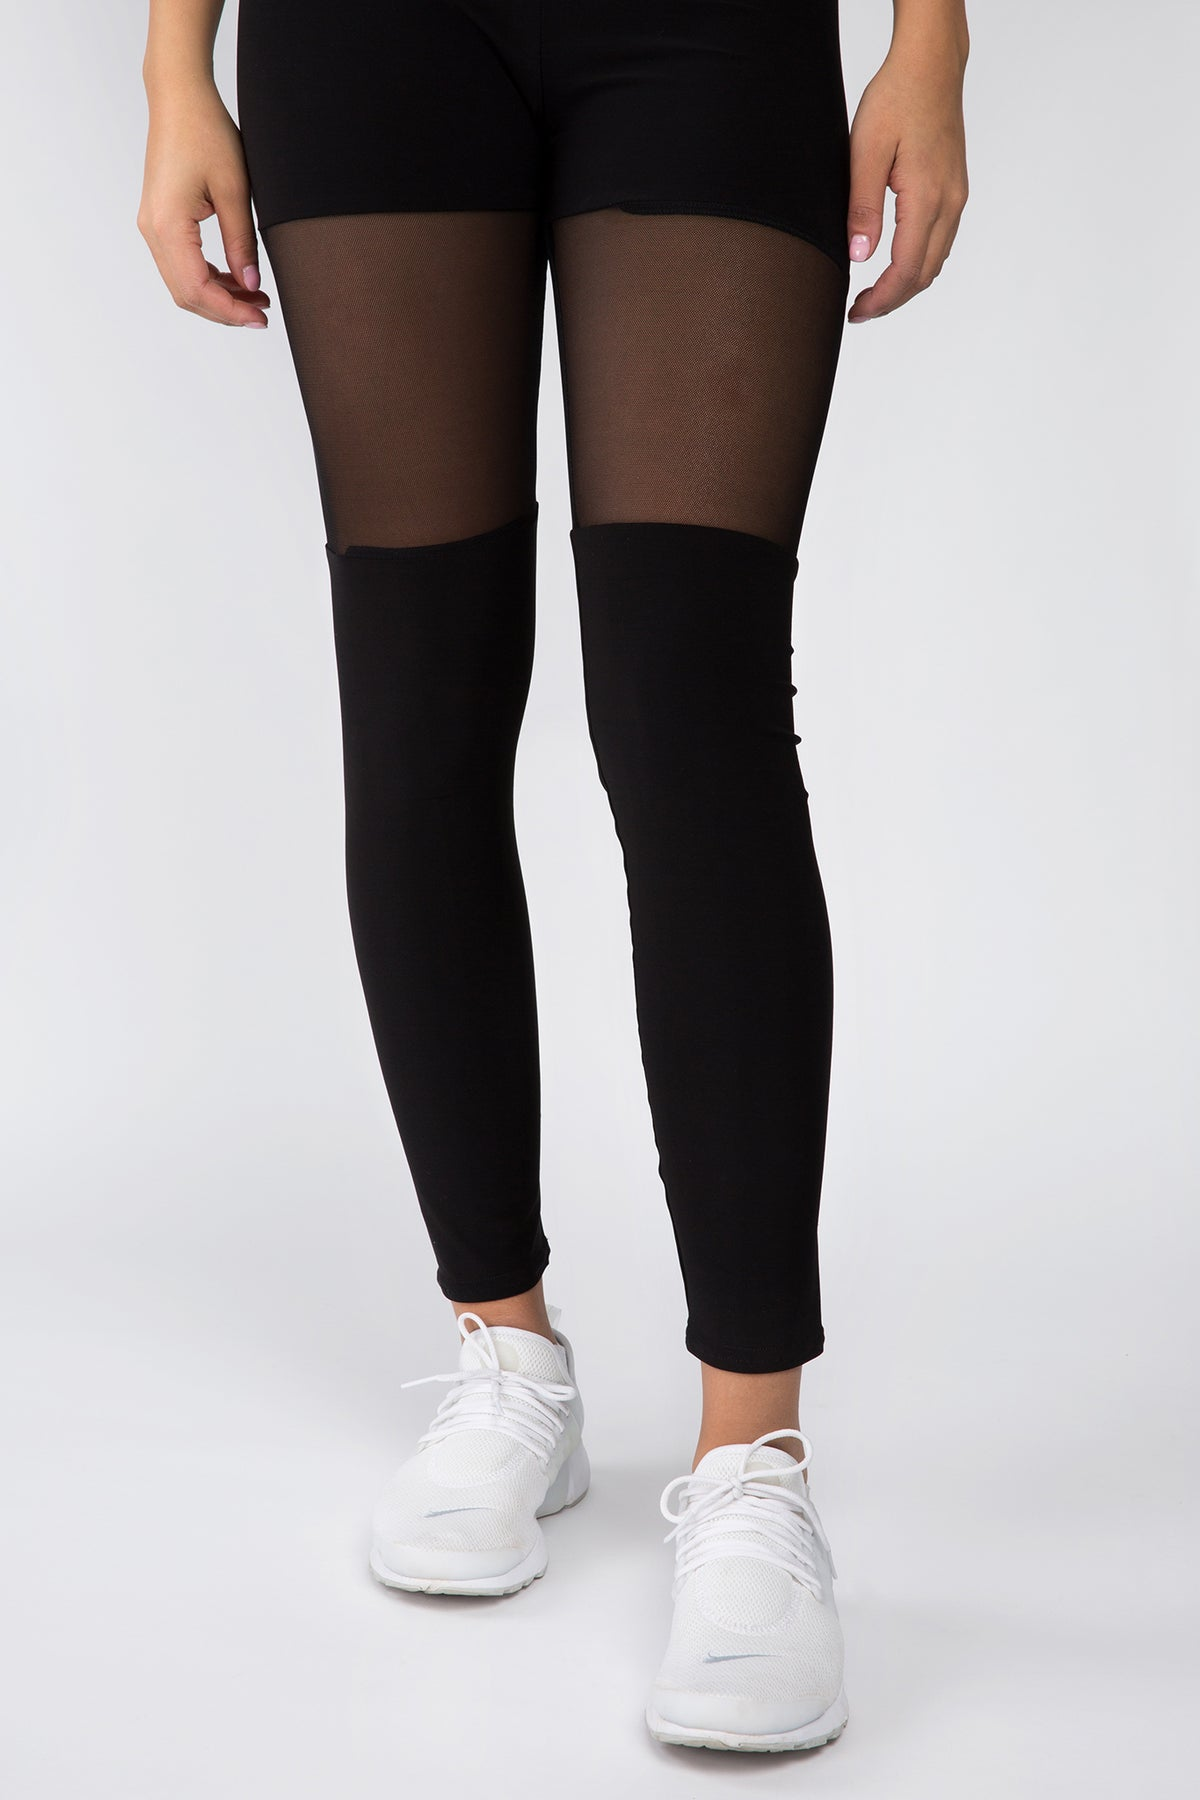 Illusion Tights